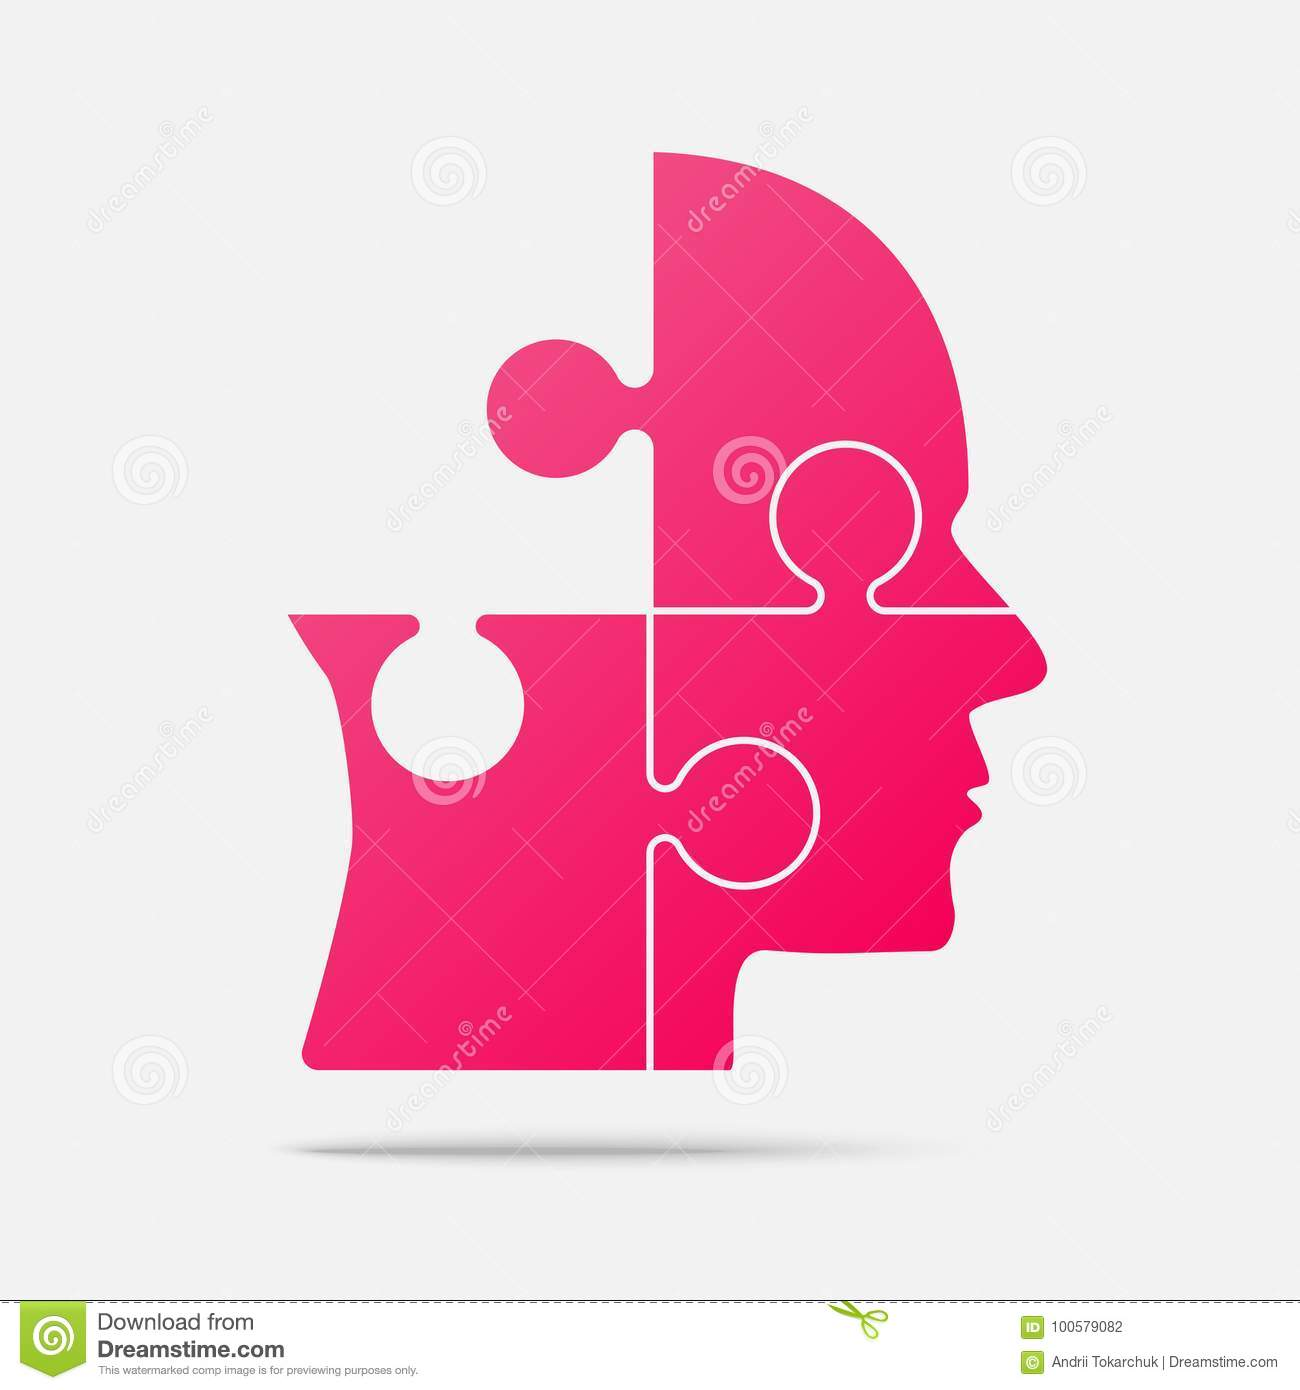 Download Design Pink Puzzle Piece Head